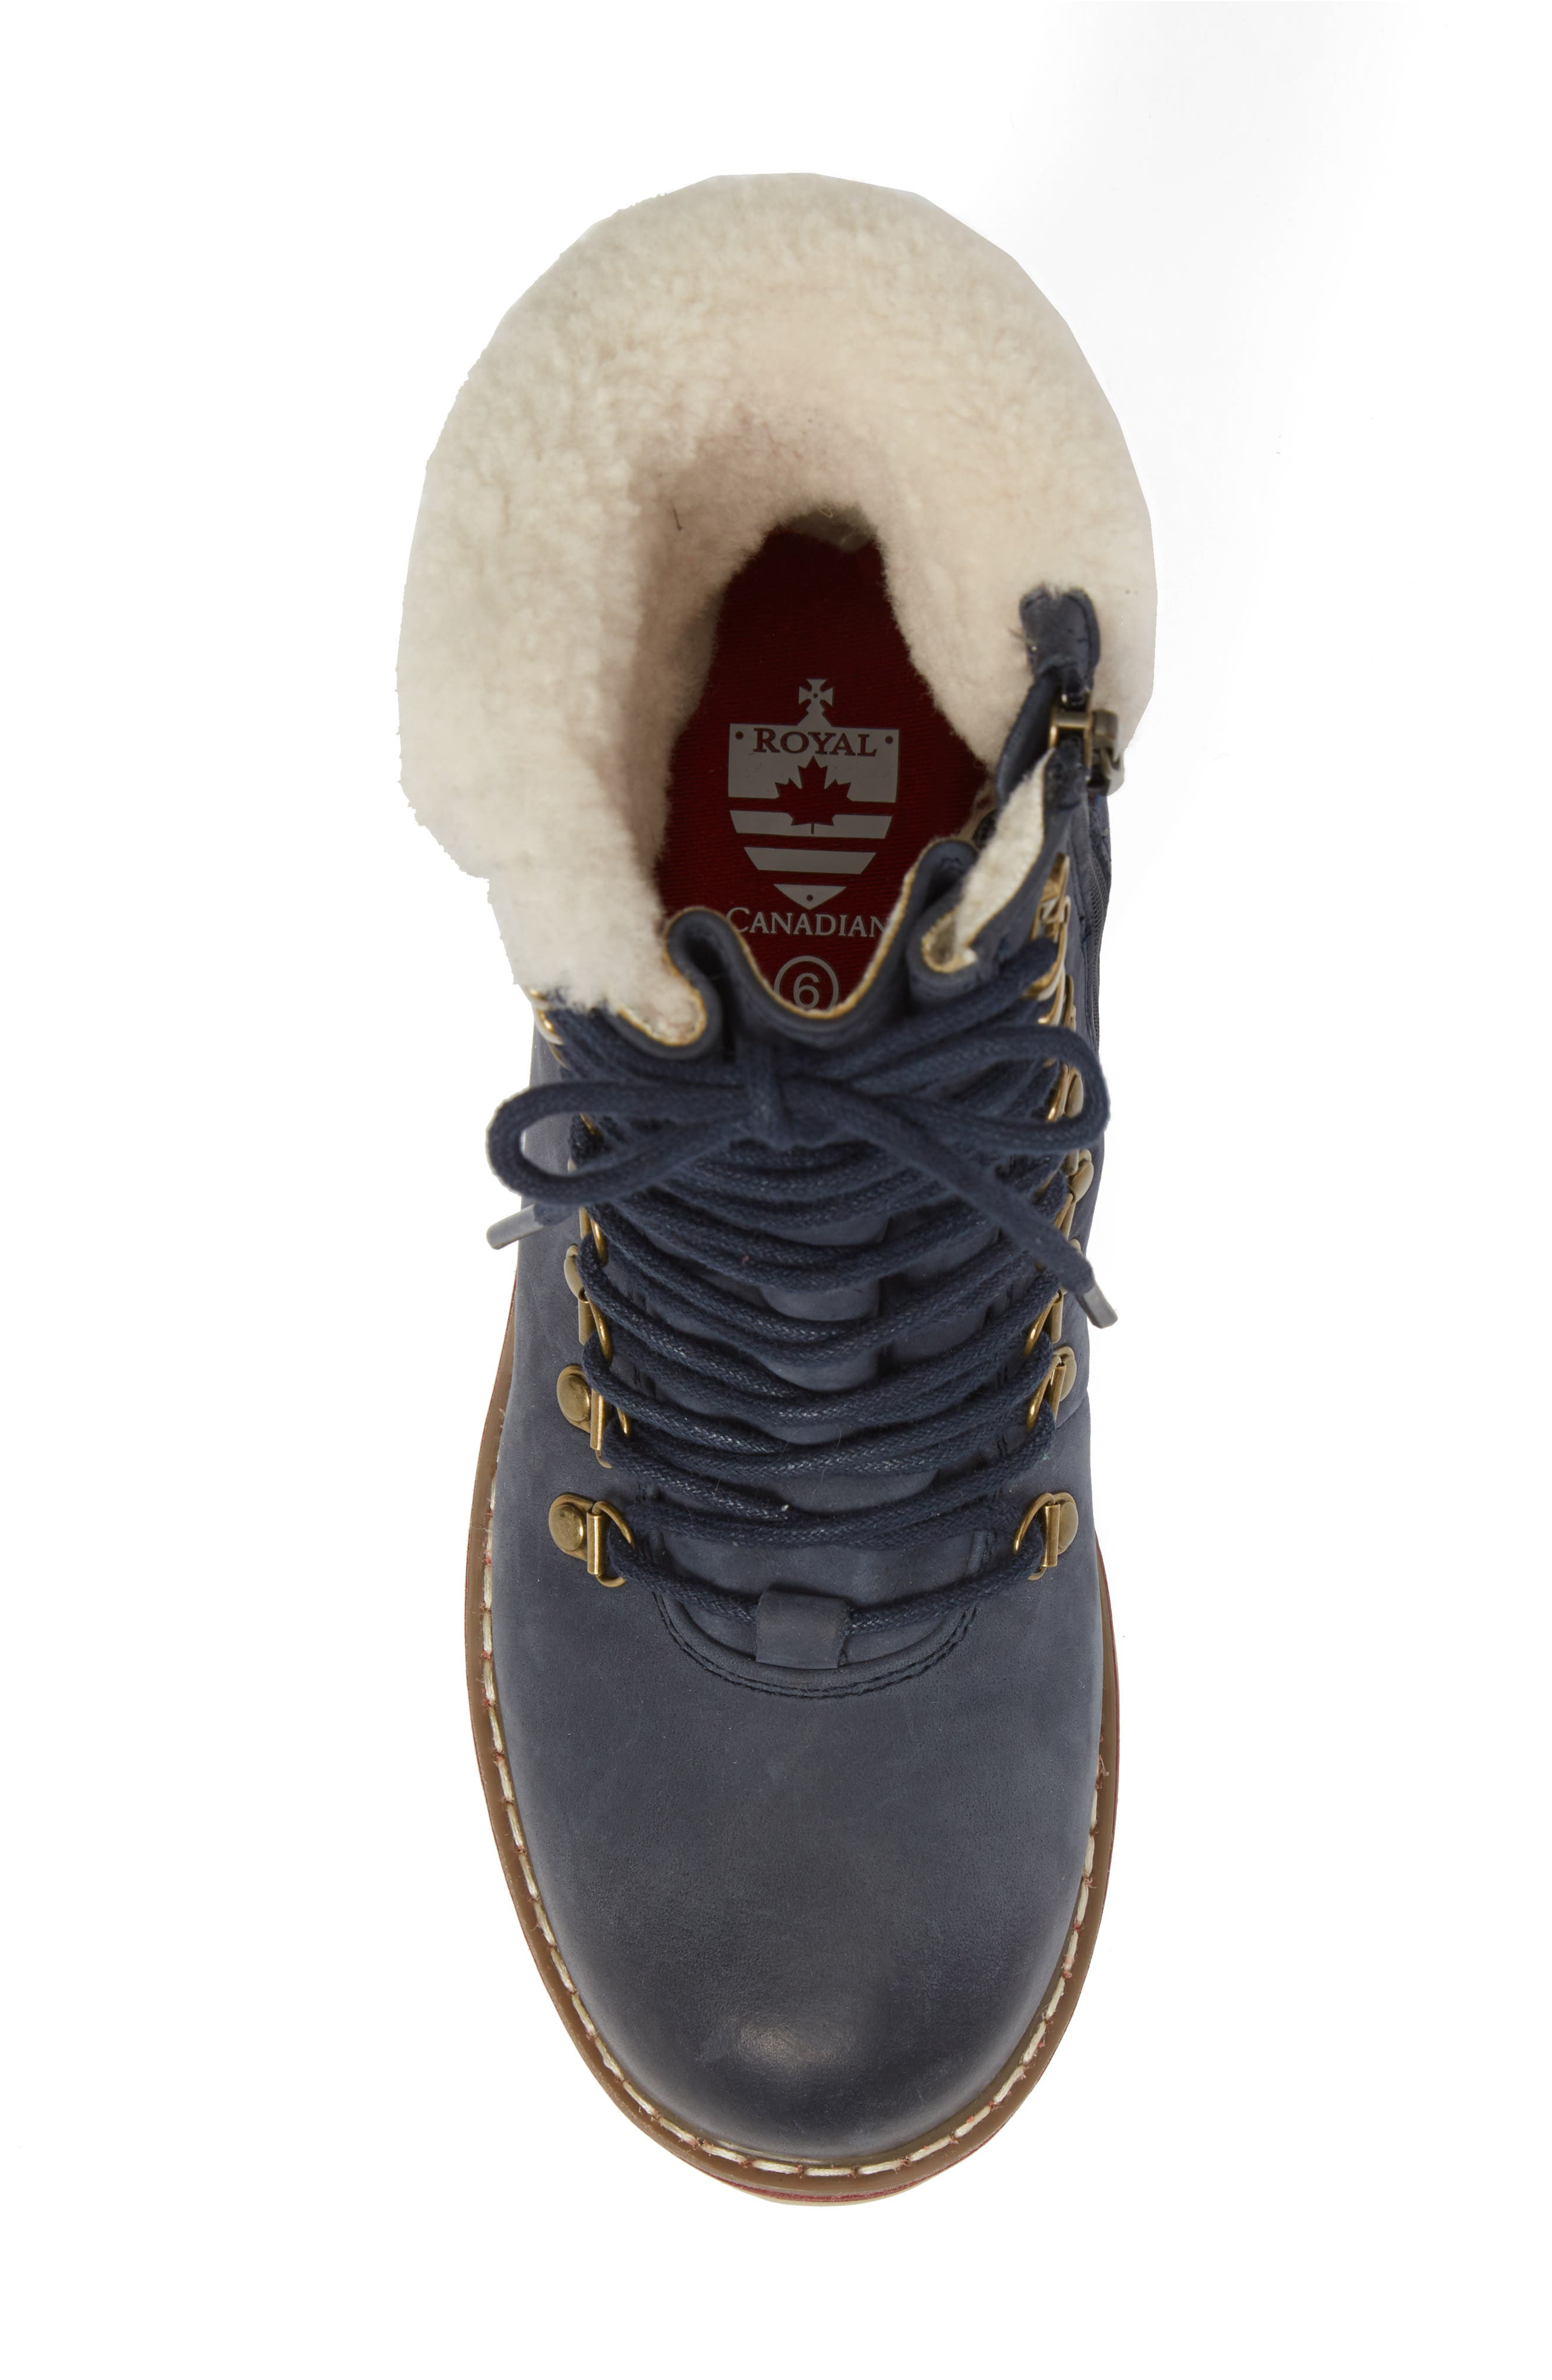 Lethbridge Waterproof Snow Boot with Genuine Shearling Cuff,                             Alternate thumbnail 20, color,